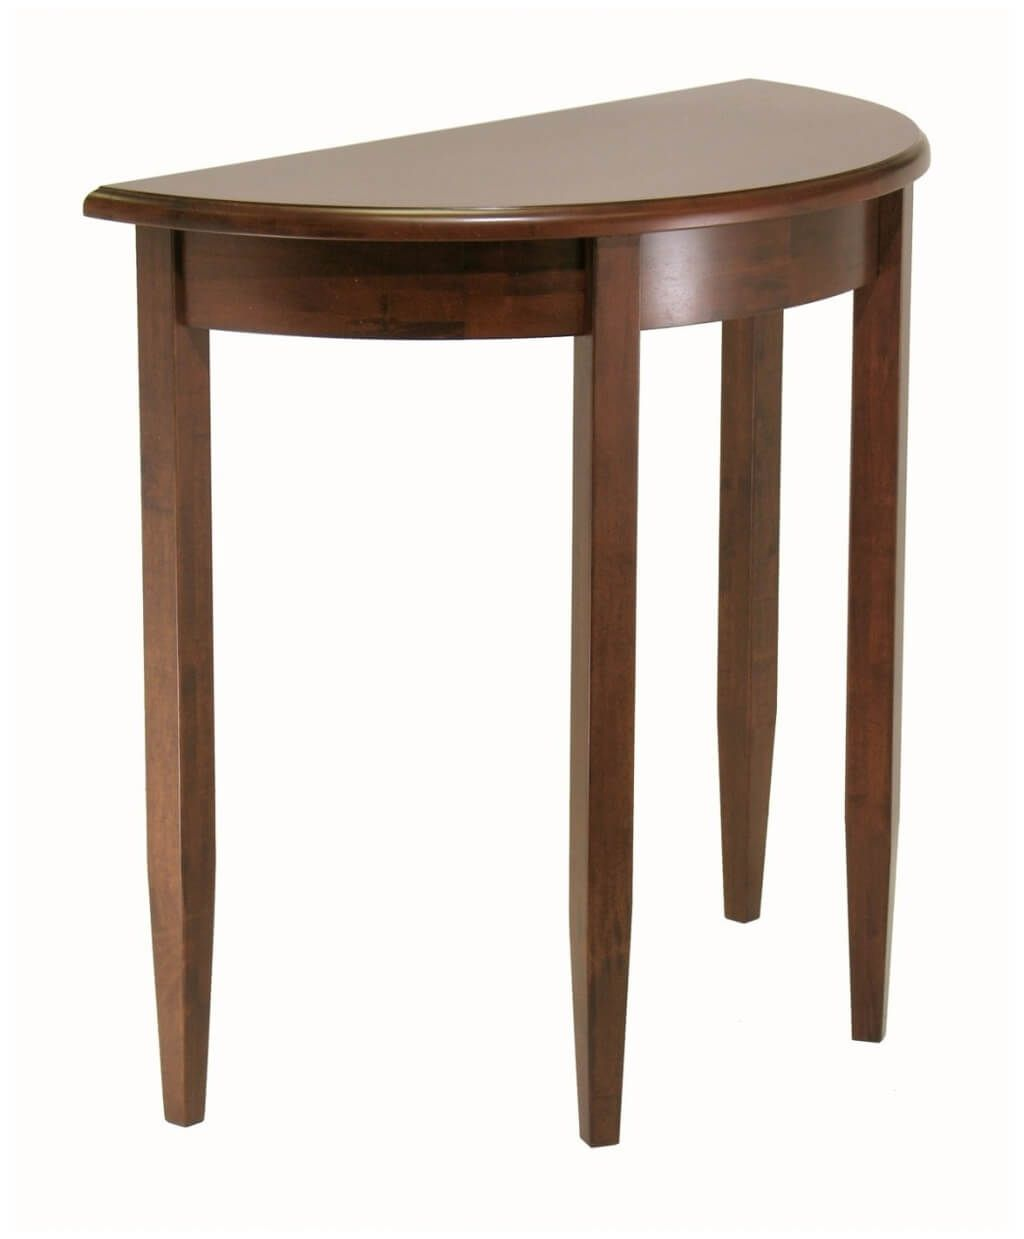 furniture mini and sleek half moon console table design cherry small accent big lots computer desk tablecloths napkins step side antique media storage end wooden bedside designs